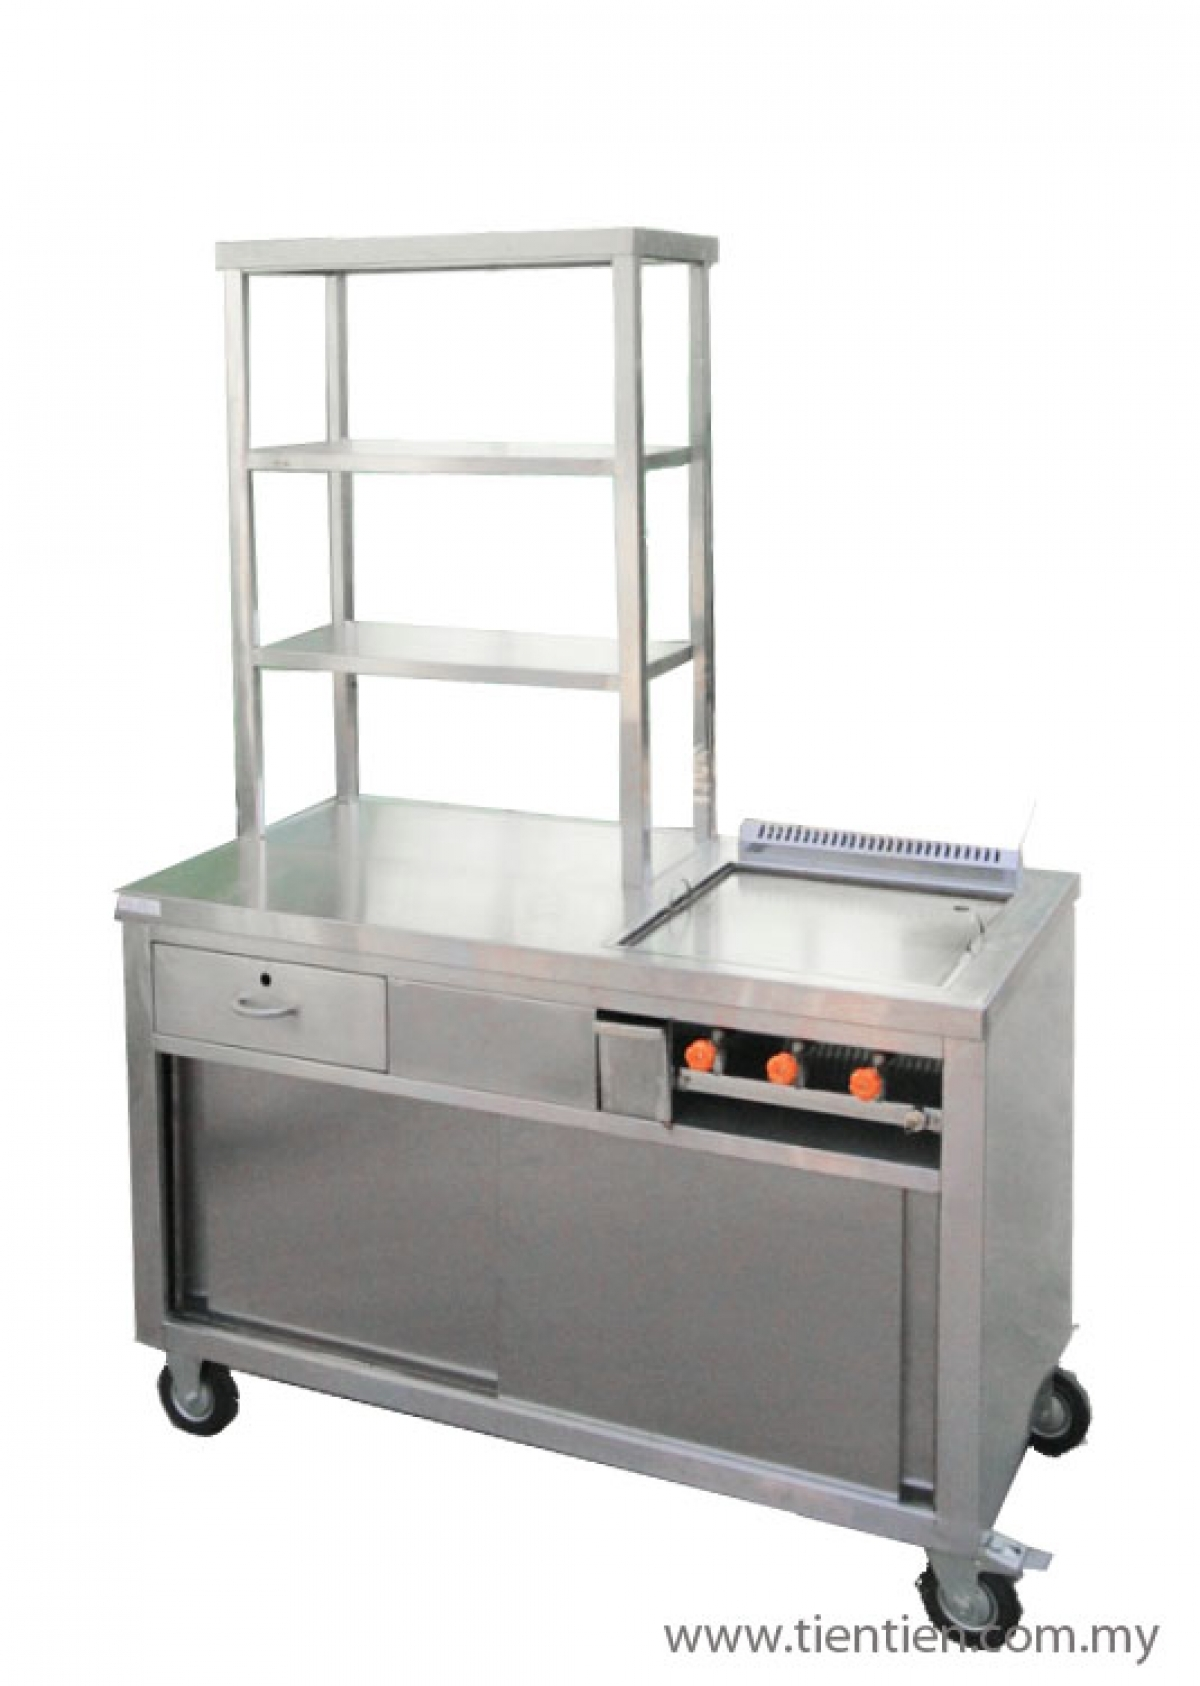 Stainless steel burger stall tien tien kitchen equipment for I kitchen equipment